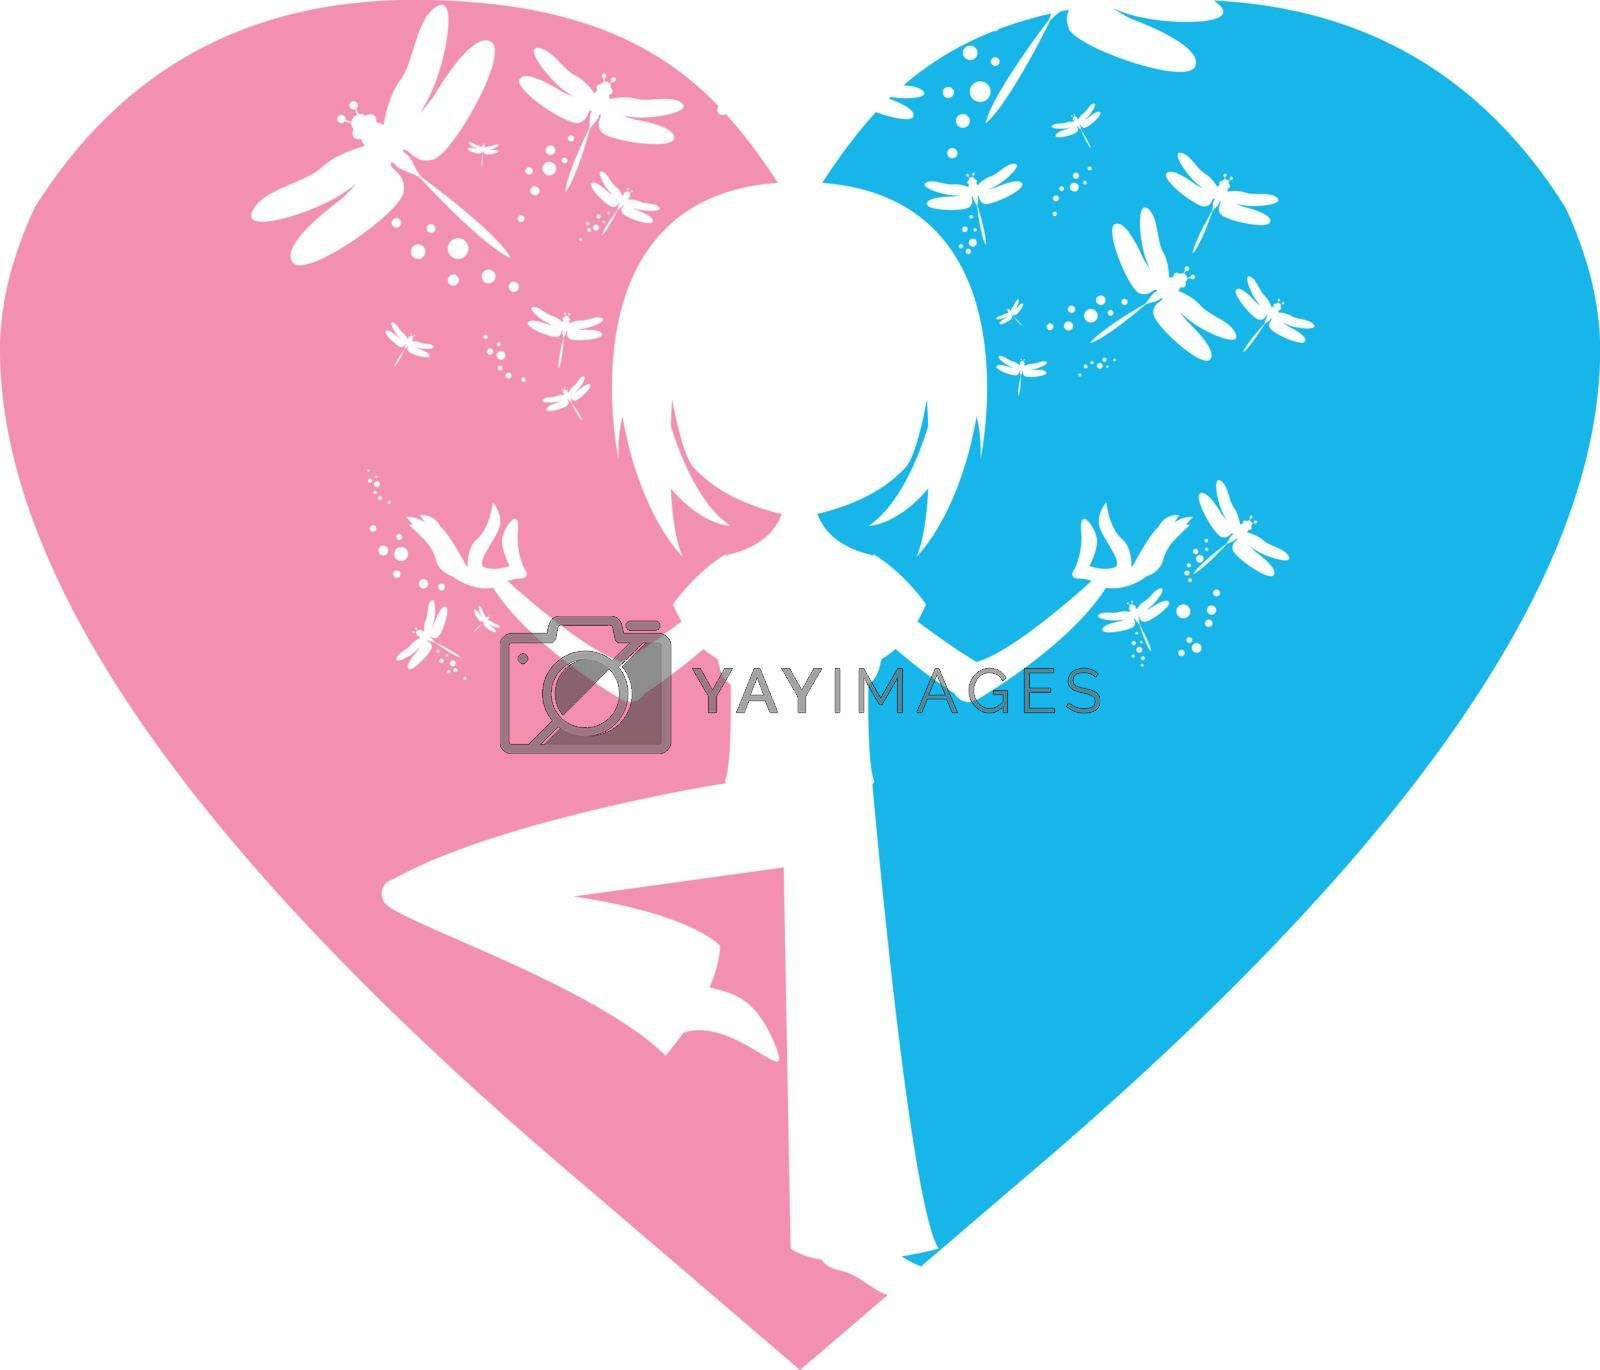 Cartoon Yoga Girl with Dragonflies in Silhouette on a Valentine Heart Illustration by Mark Murphy Creative